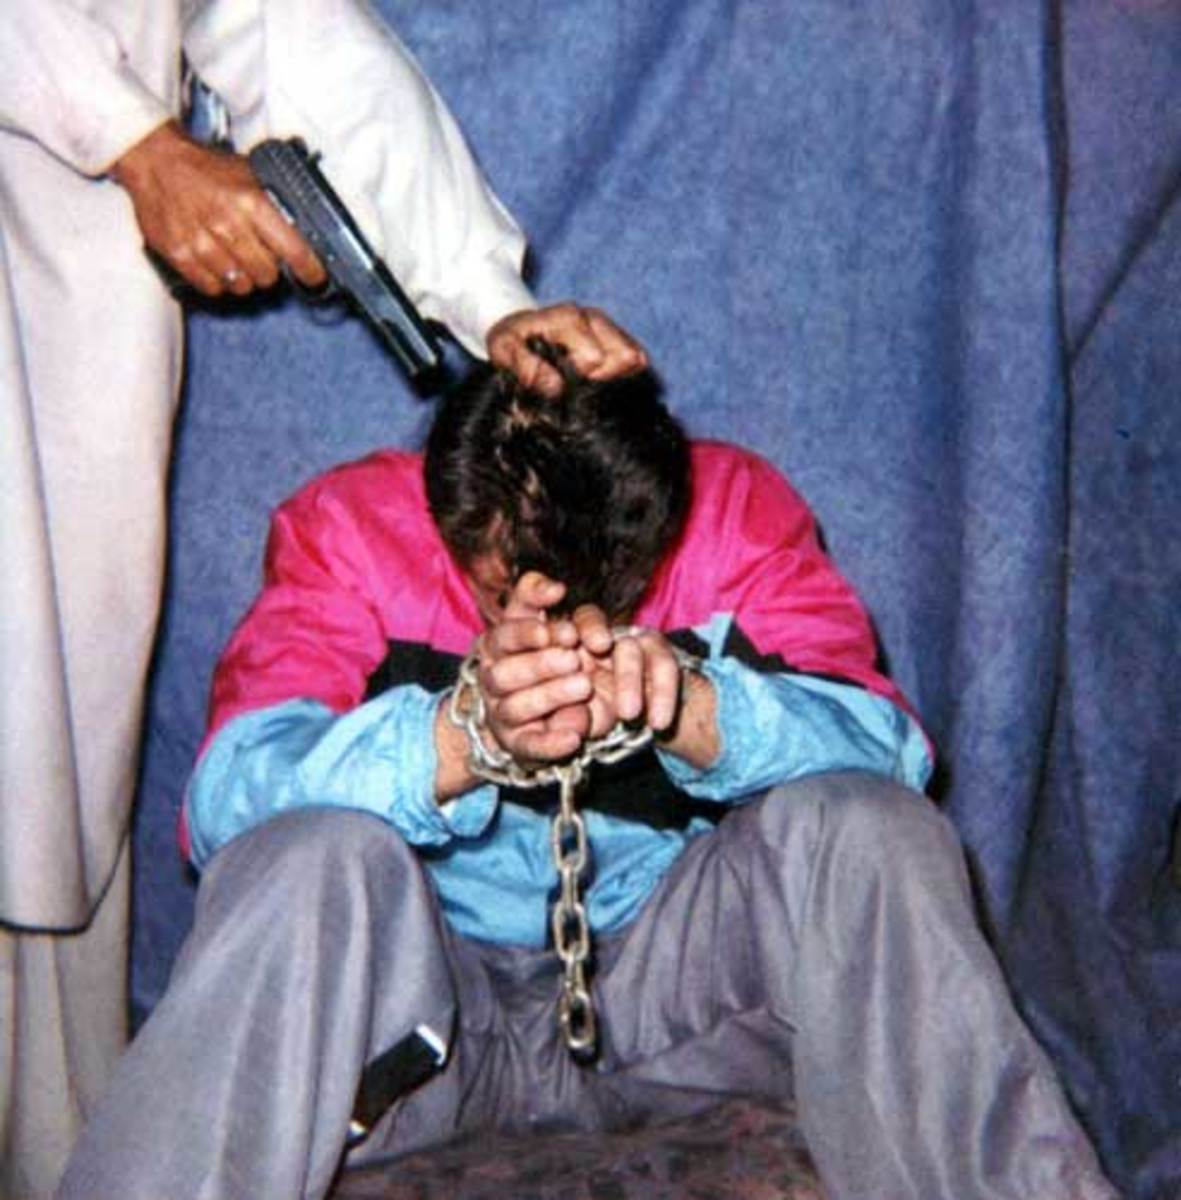 DANIEL PEARL SHORTLY BEFORE BEHEADING